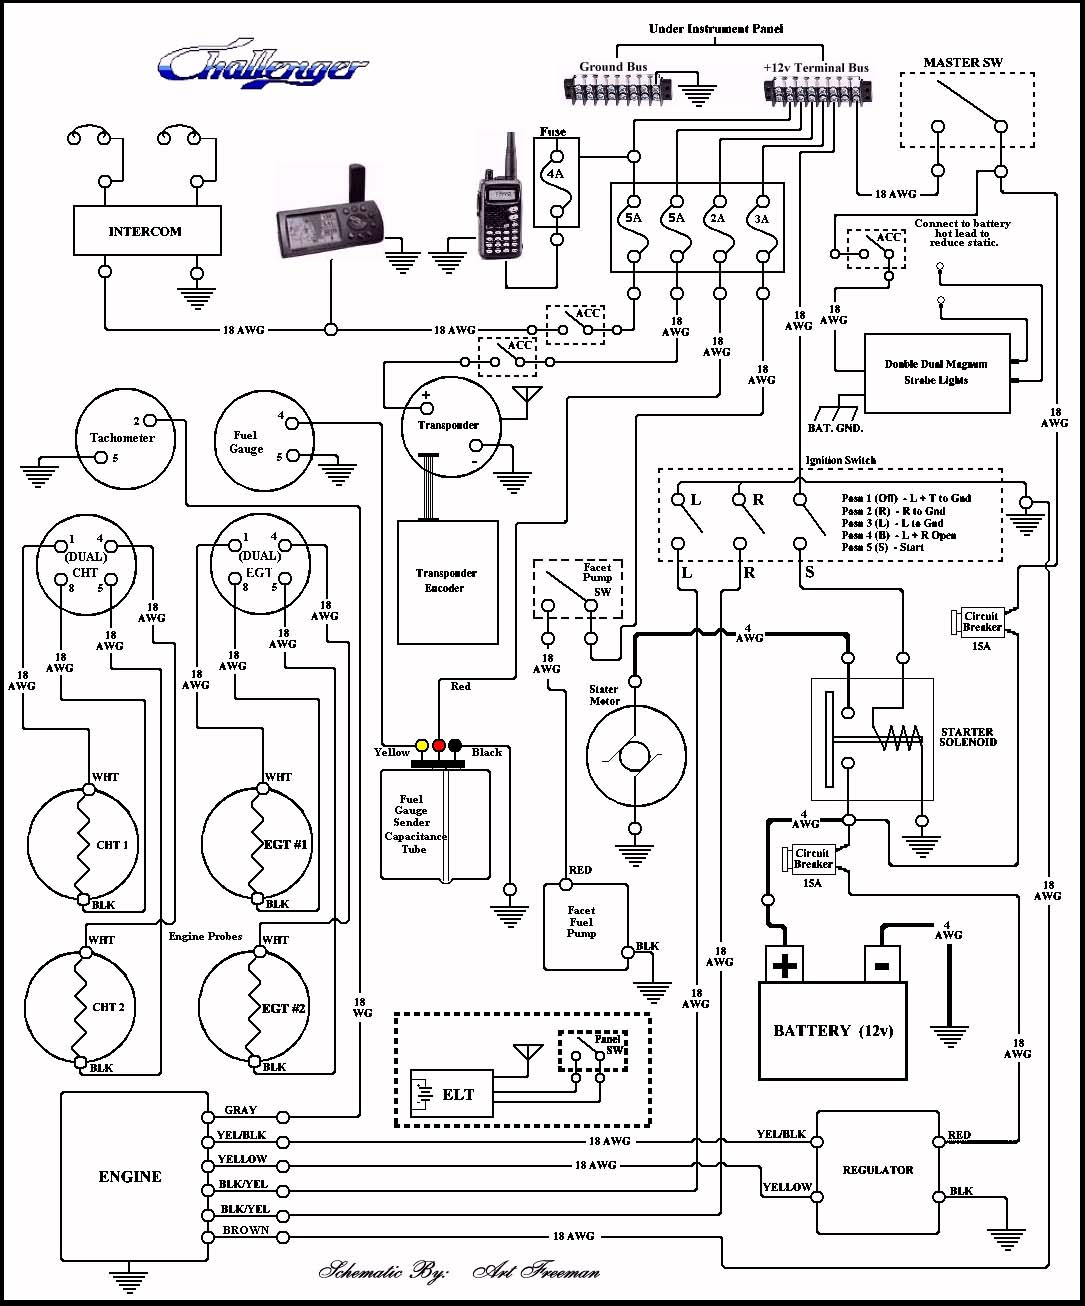 hight resolution of basic wiring of fuselage instruments and power source rh challengers101 com rotax 582 ignition wiring diagram rotax 650 engine diagram